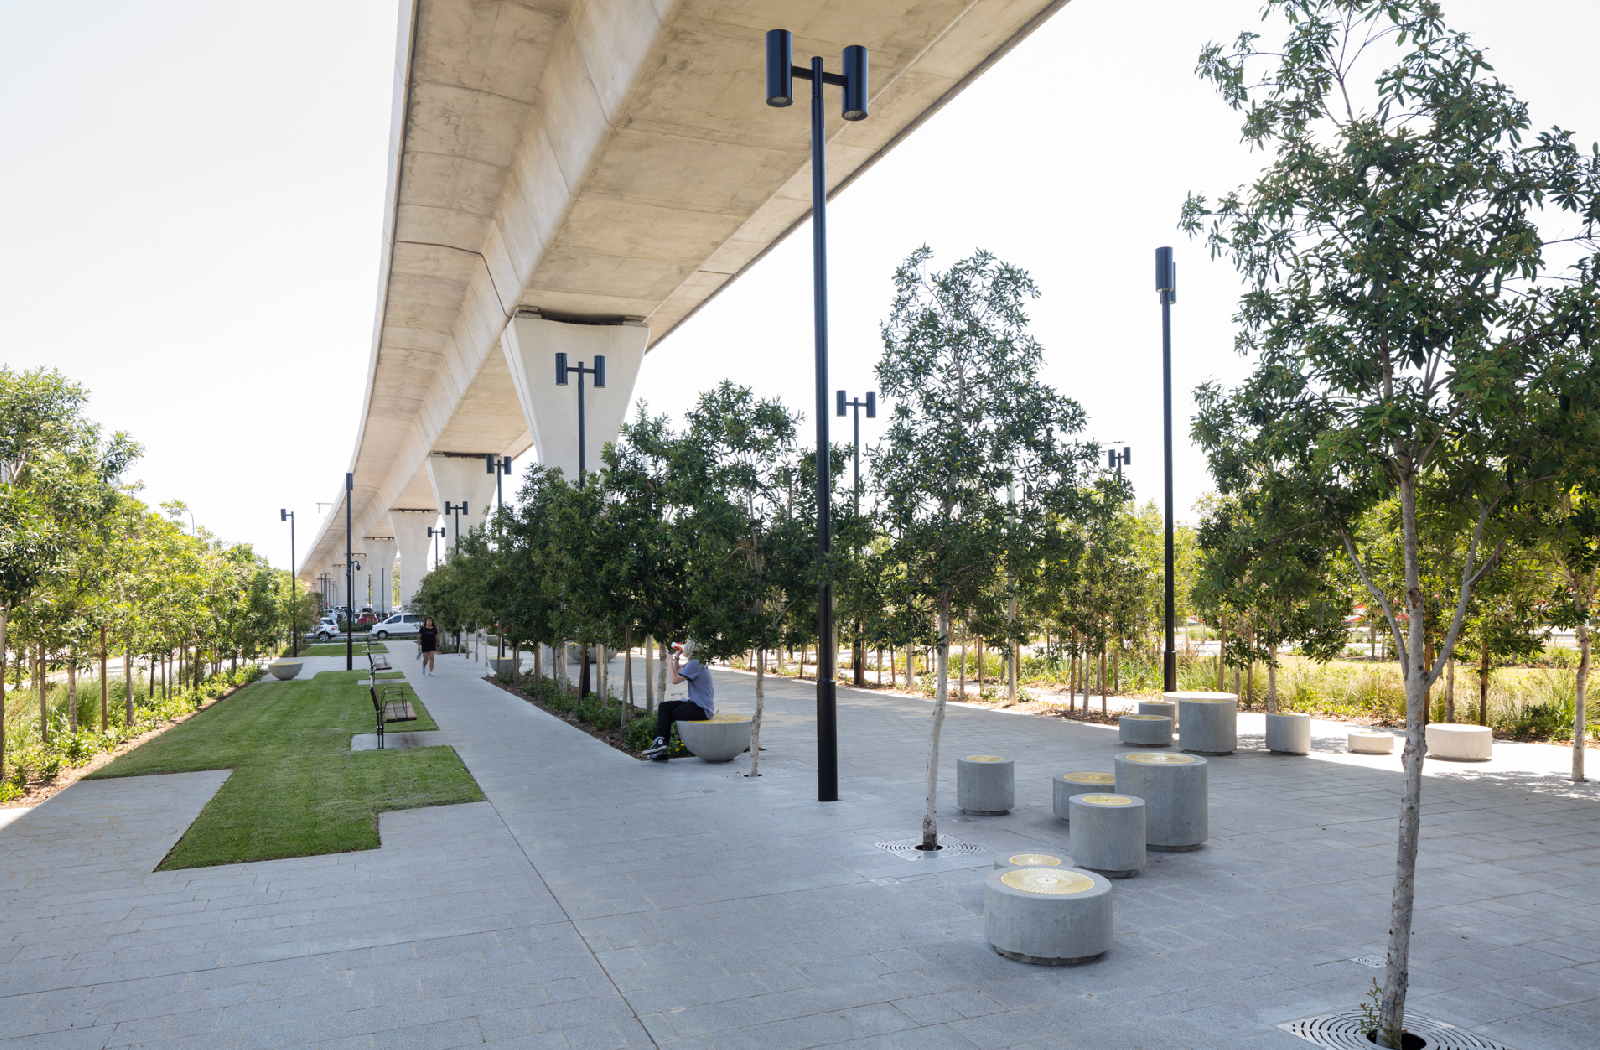 North West Metro station concept by McGregor Westlake Architecture